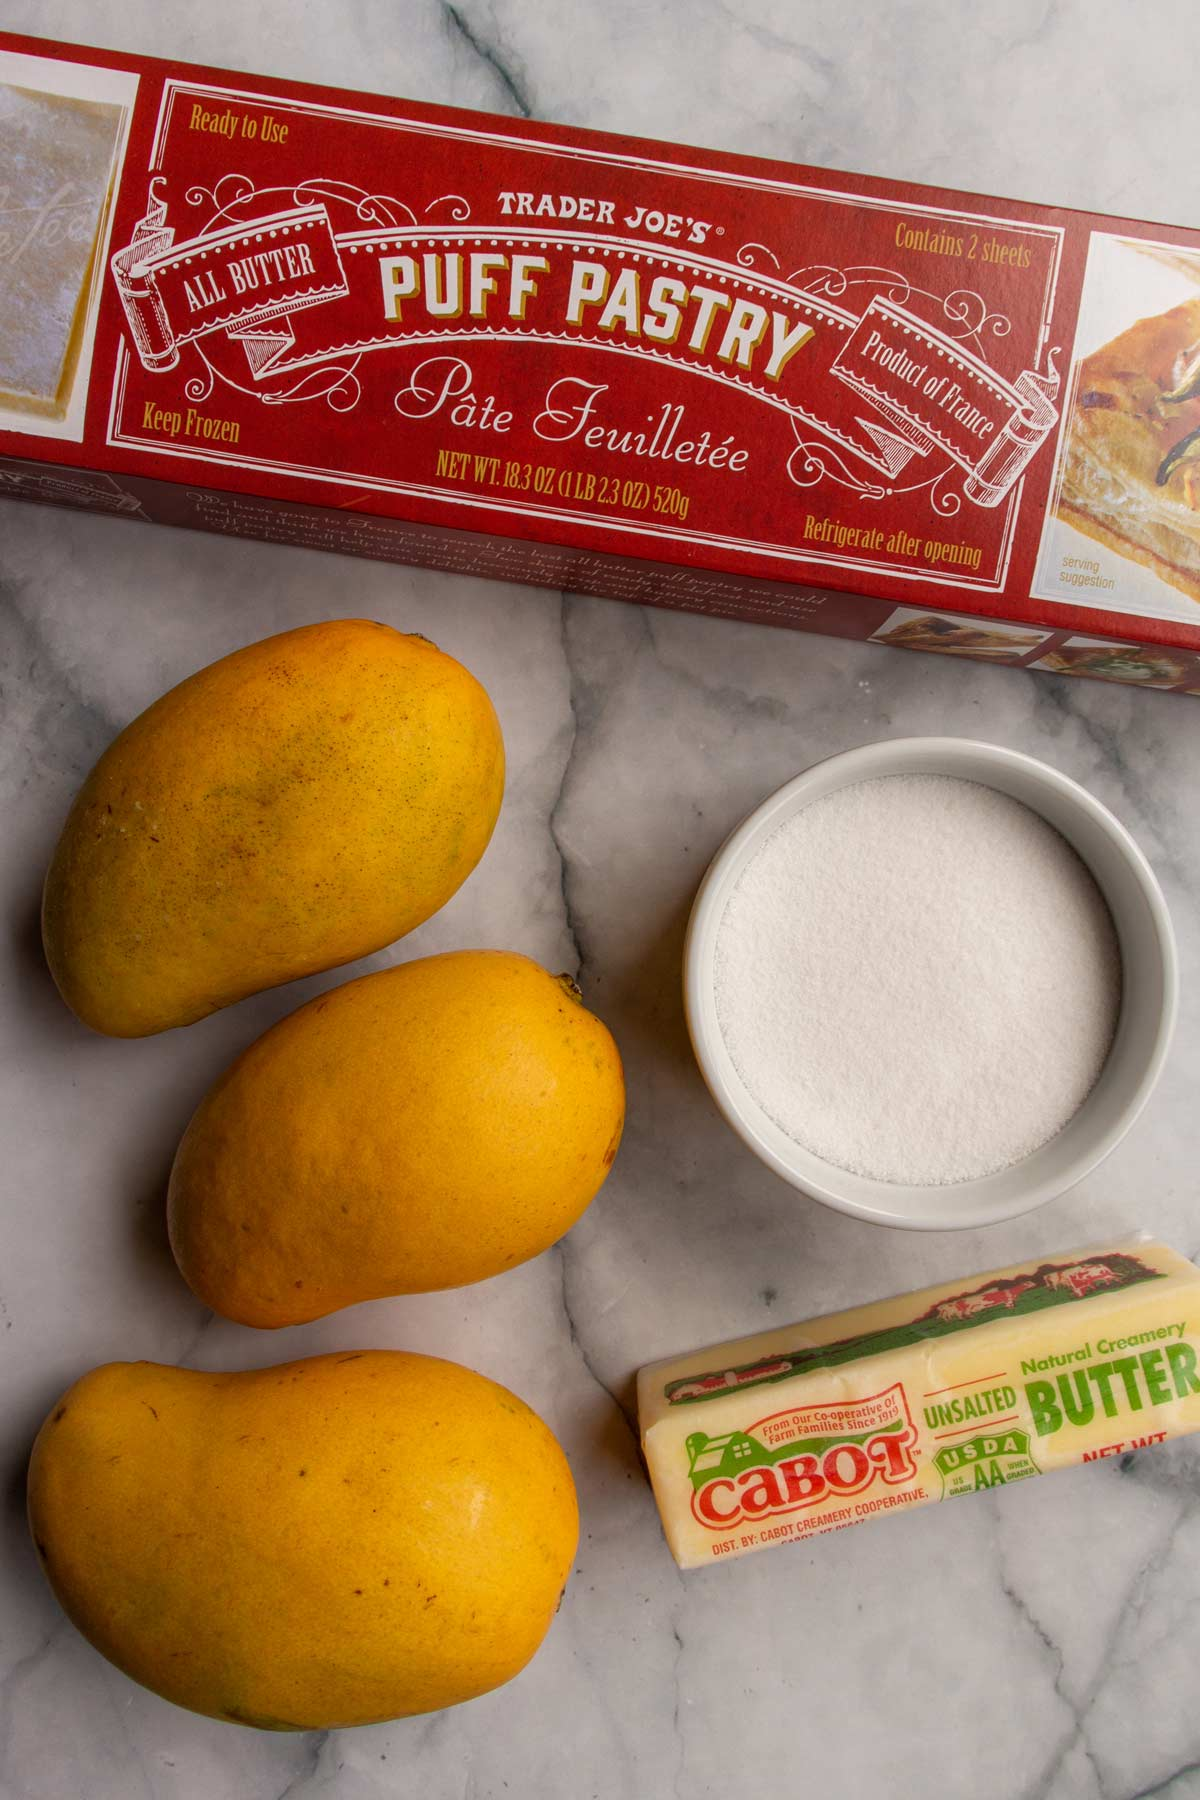 A box of puff pastry, 3 mangos, a ramekin of sugar, and a stick of butter.